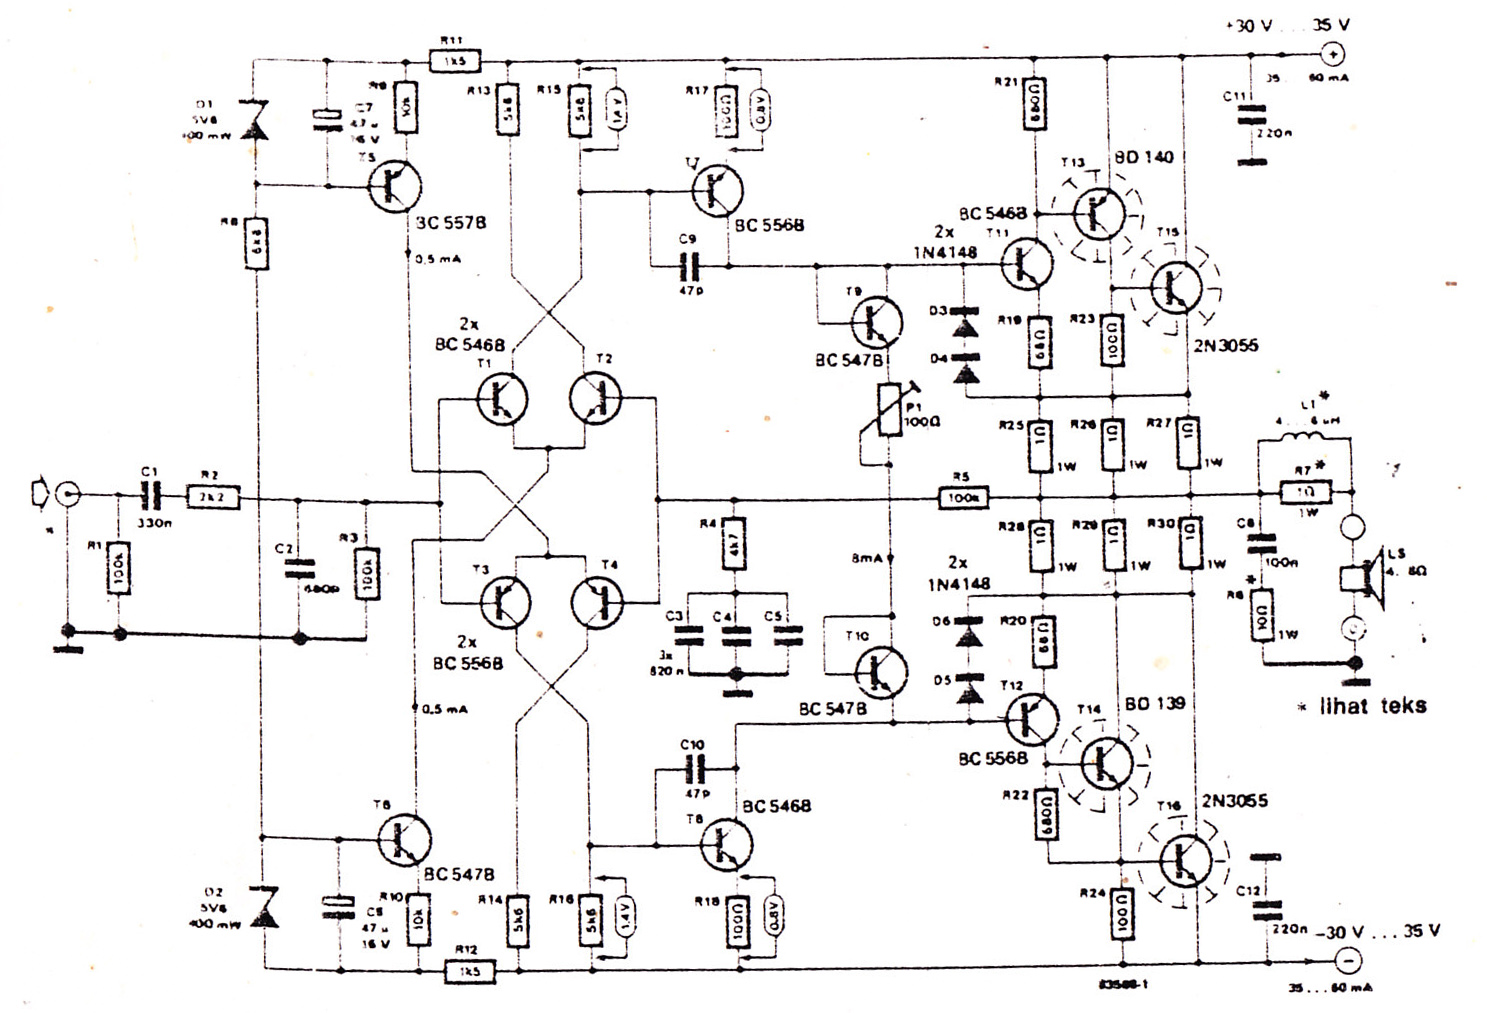 200 Watt Audio Amplifier Circuit Diagrams Wiring Library Power Transistor Circuits Electronic Projects Sound Using Diagram And